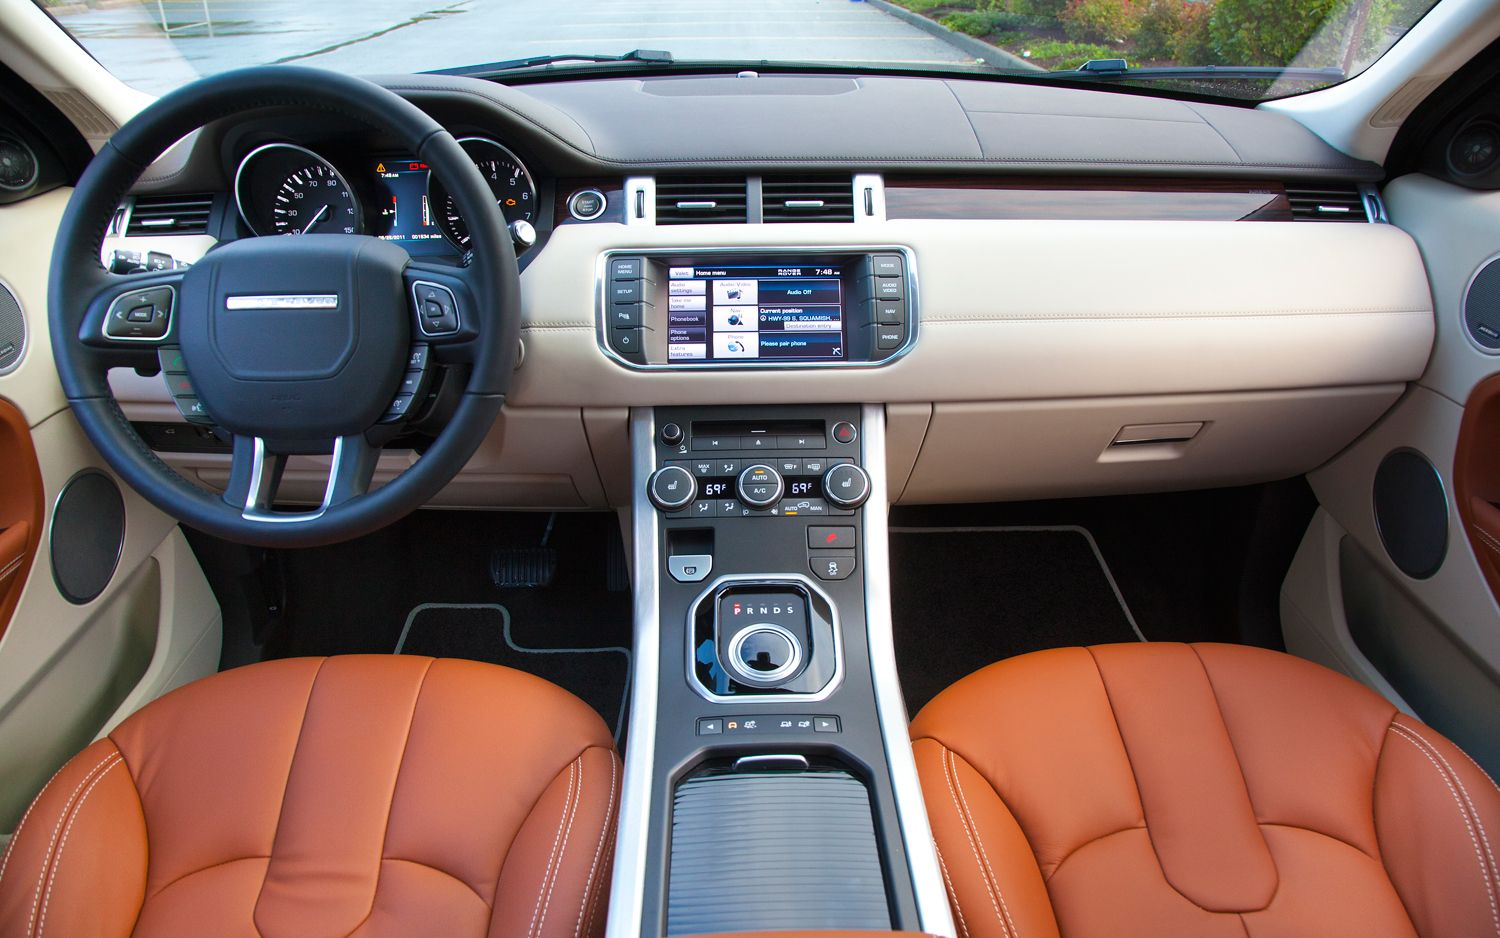 range rover evoque interior pesquisa google car. Black Bedroom Furniture Sets. Home Design Ideas